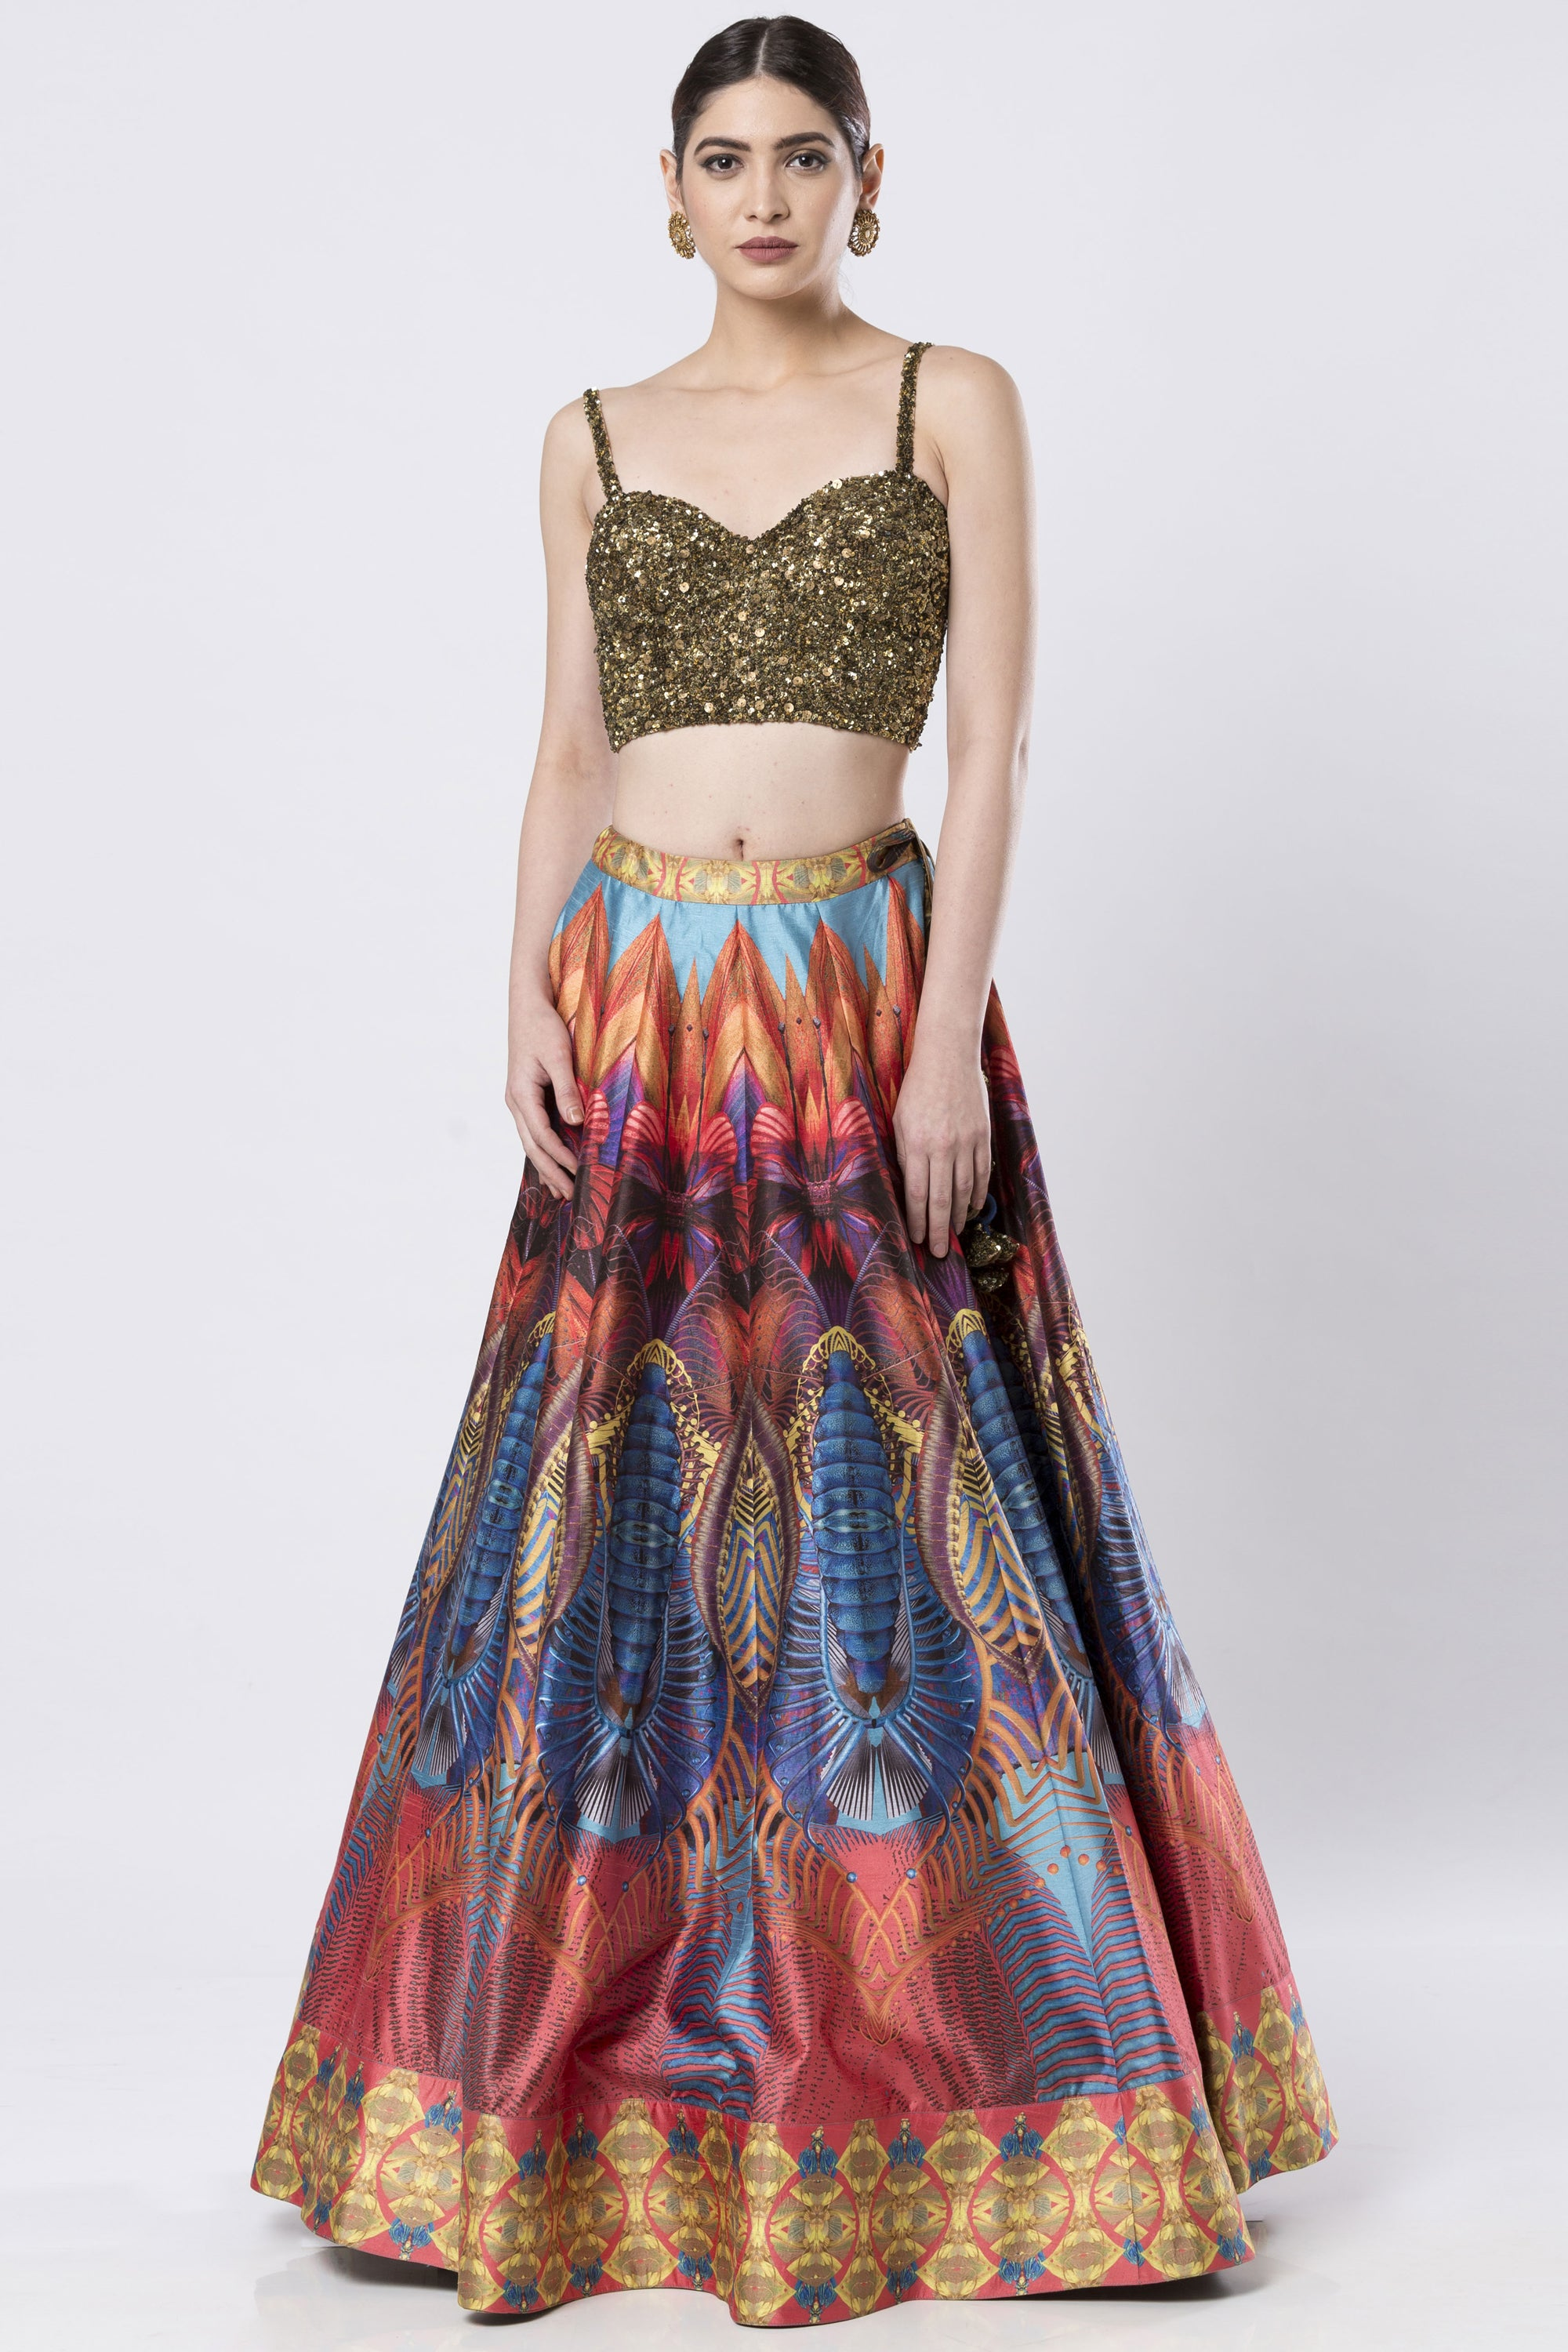 Hand Embroidered Multi-Coloured Raw Silk Skirt Set FRONT